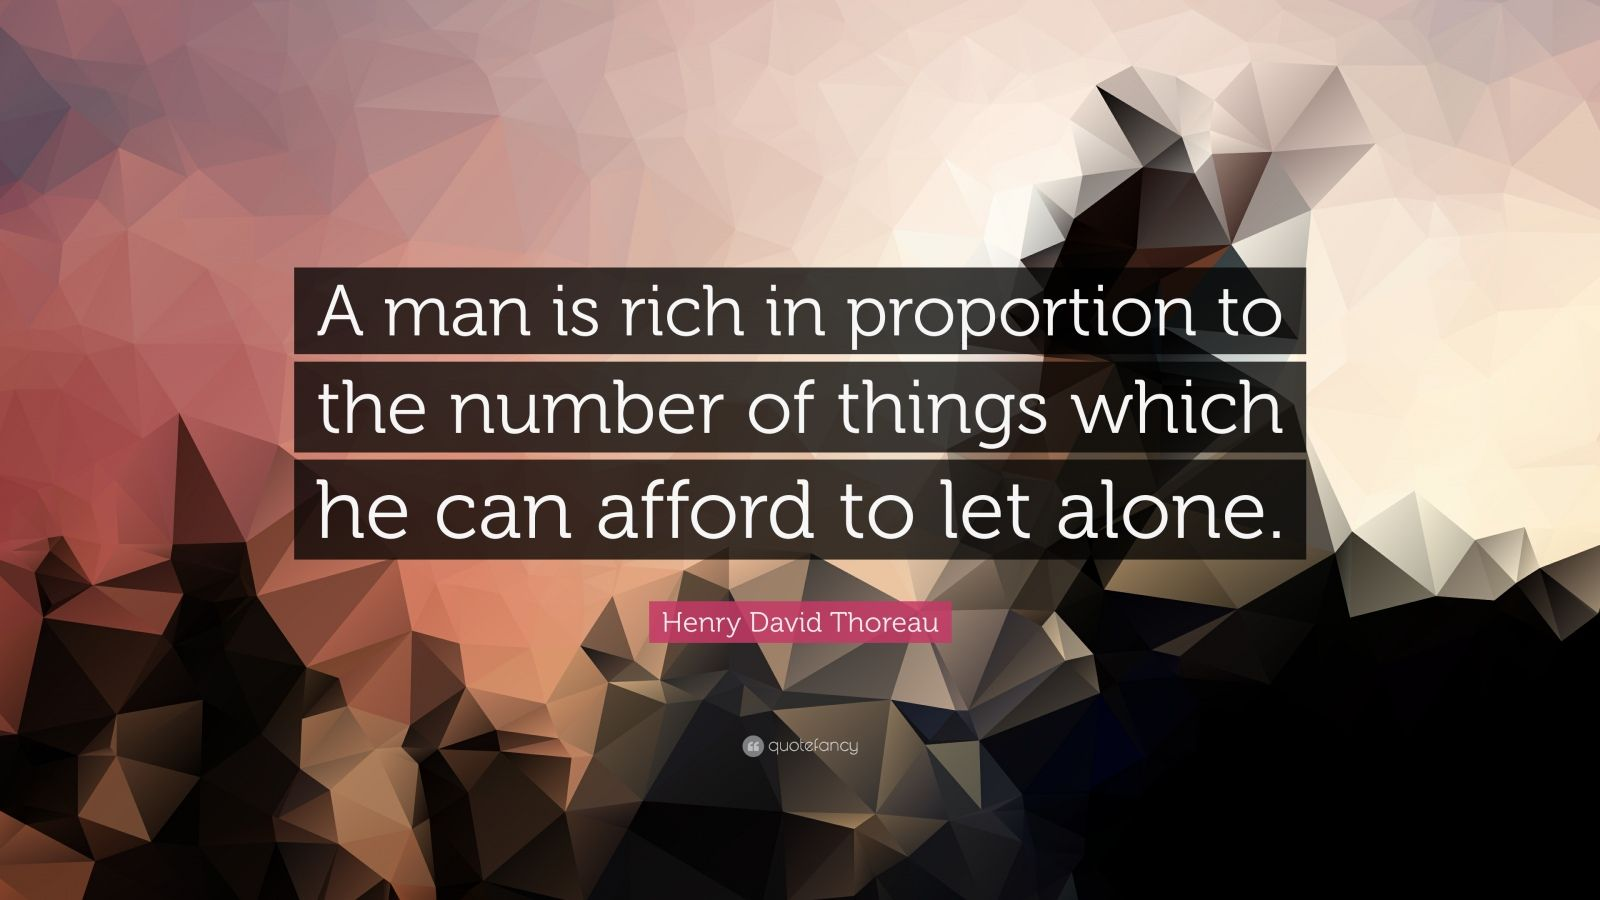 a man is rich in proportion to the number of things which he can afford to let alone